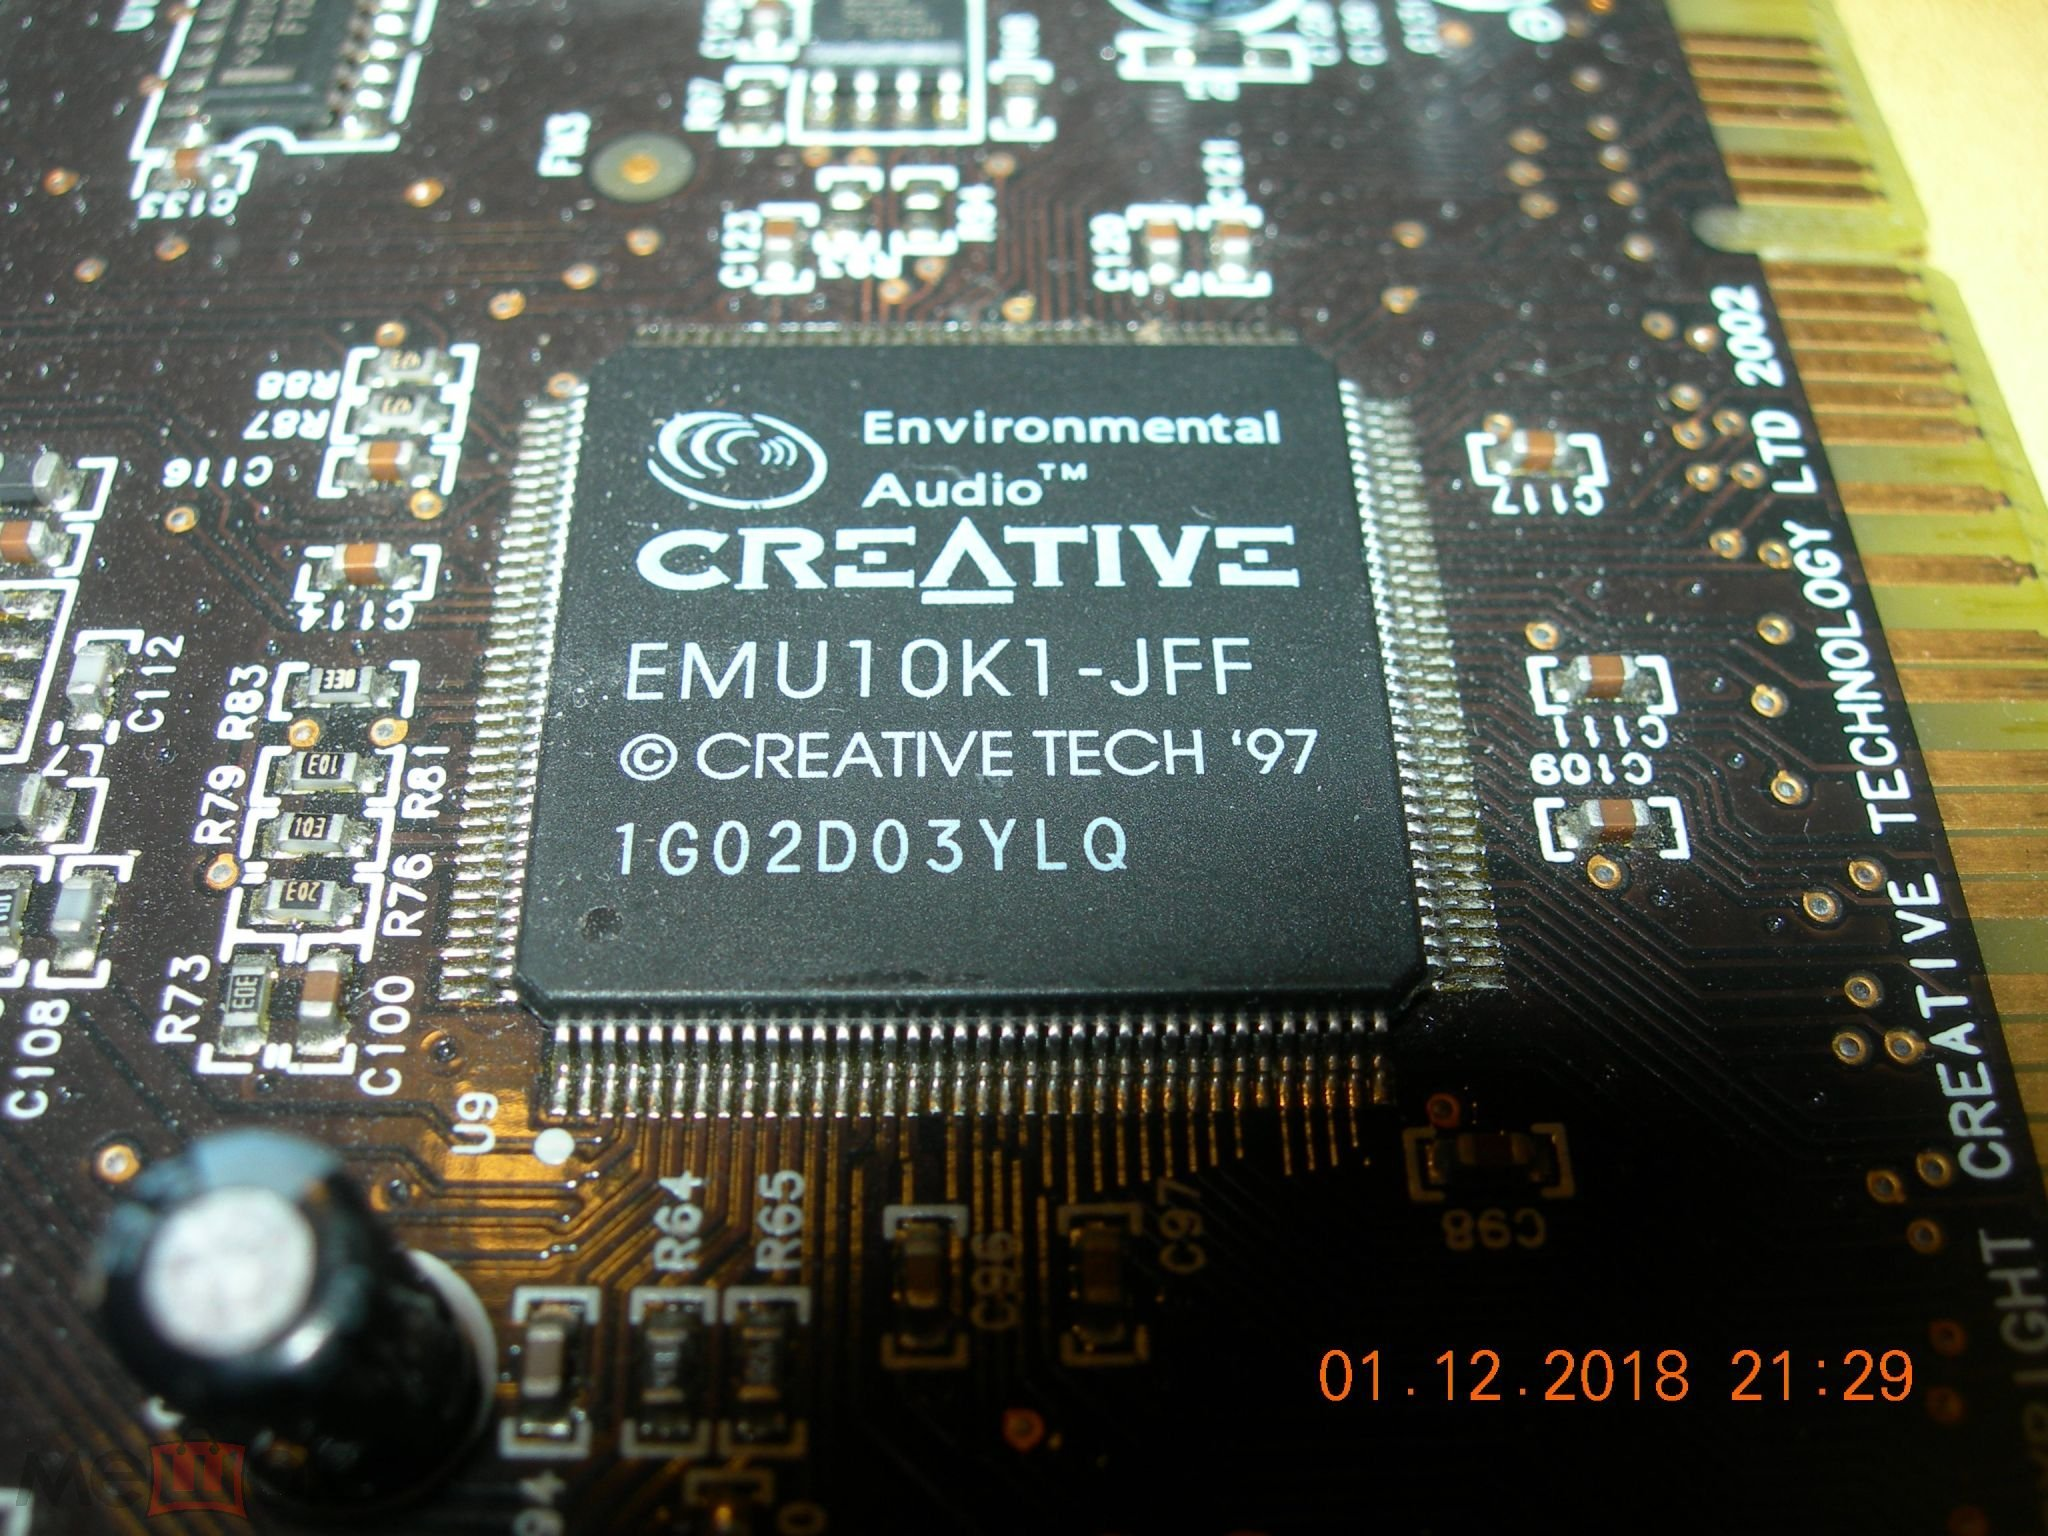 CREATIVE EMU10K1-JFF SOUND CARD DRIVERS (2019)